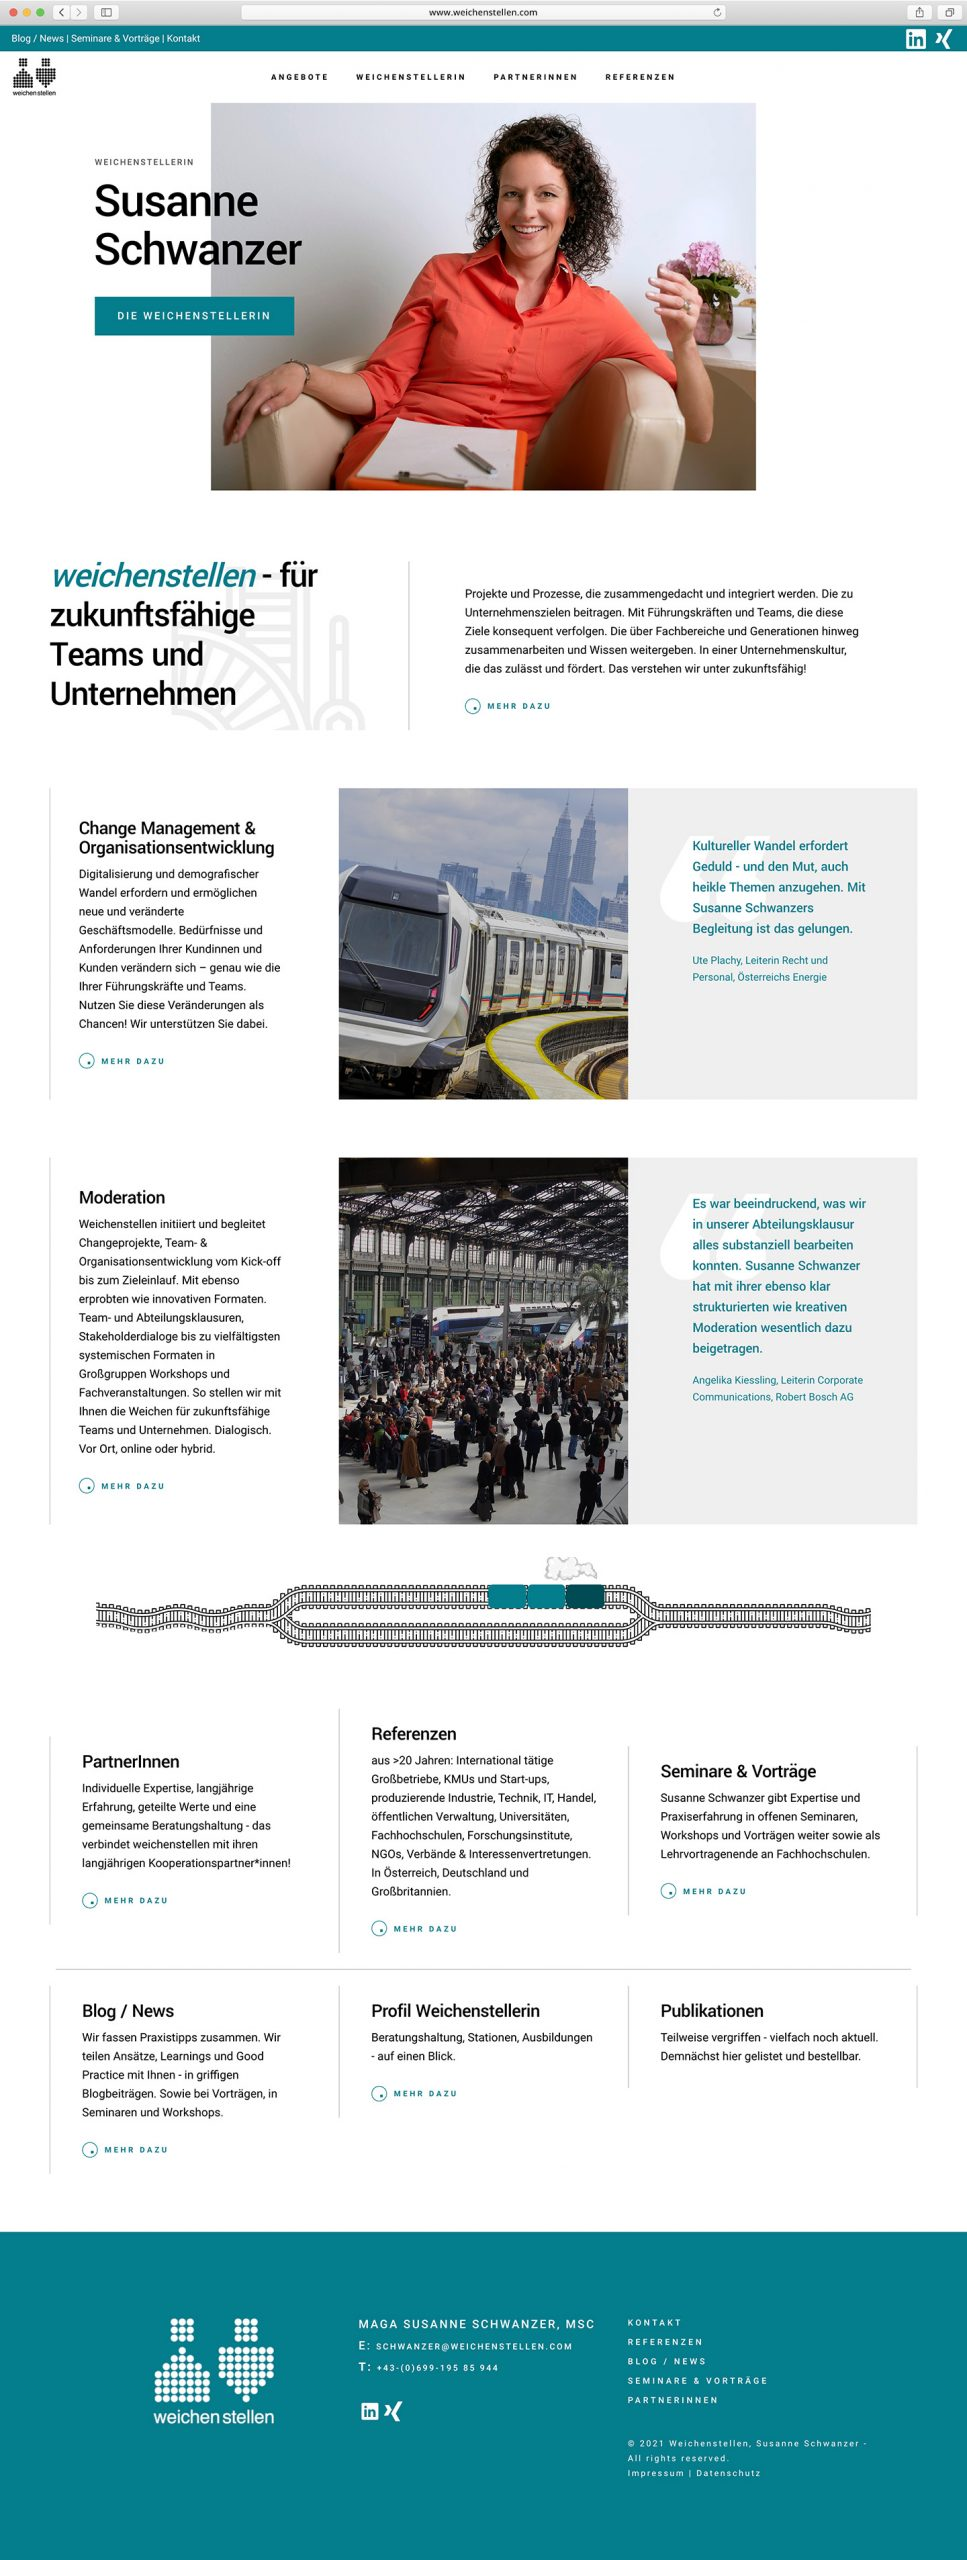 Weichenstellen Website Screenshot